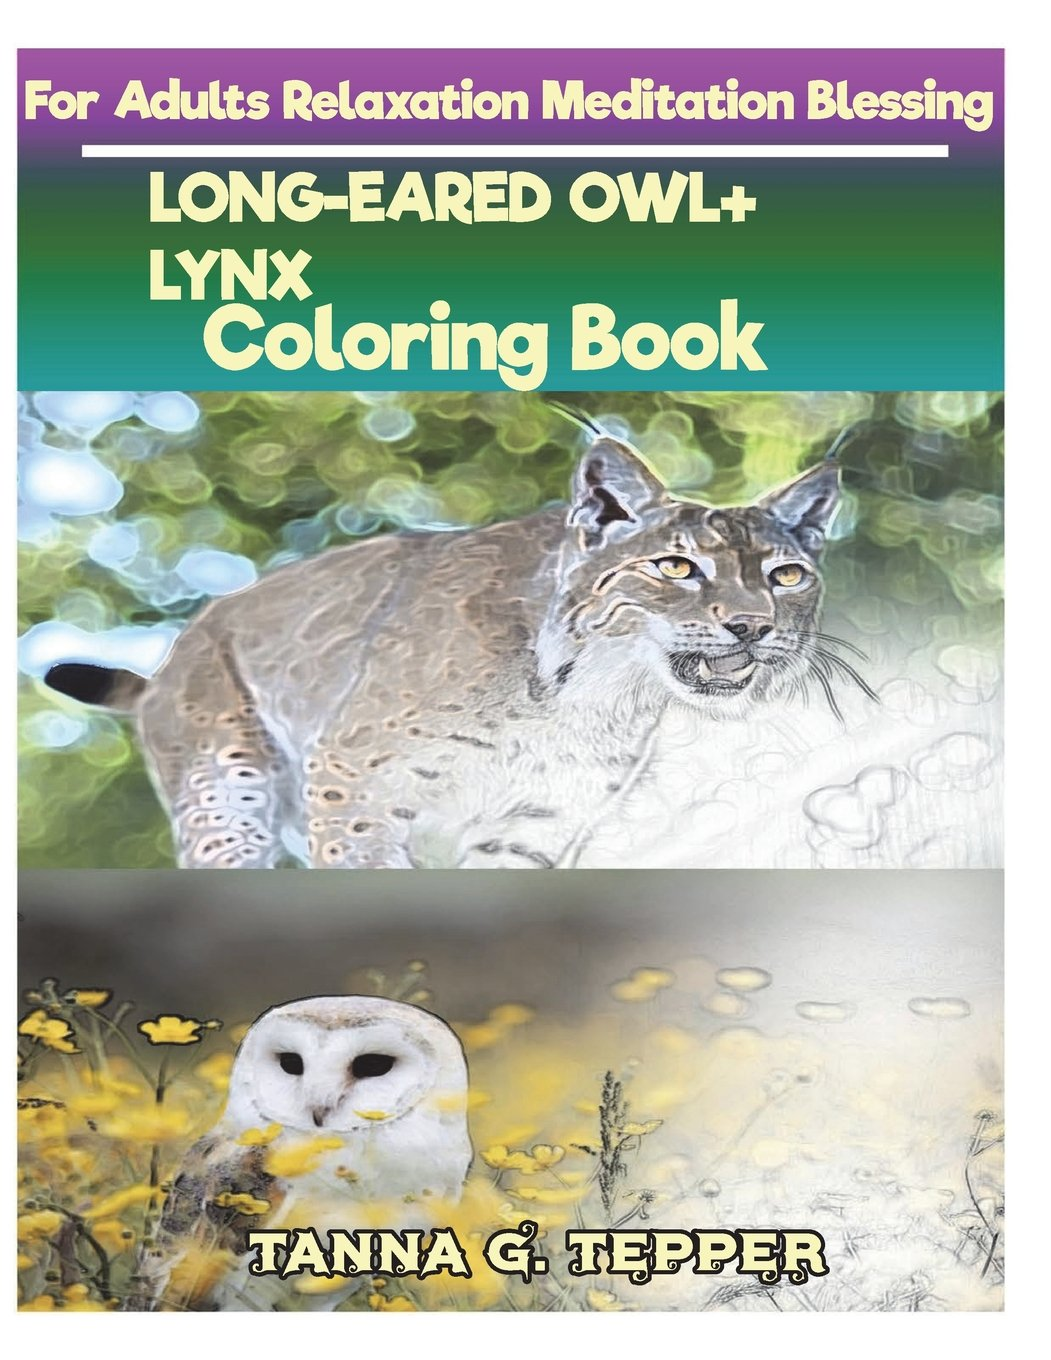 LONG-EARED OWL+LYNX Coloring book for Adults Relaxation Meditation Blessing: Sketch coloring book Grayscale Pictures PDF